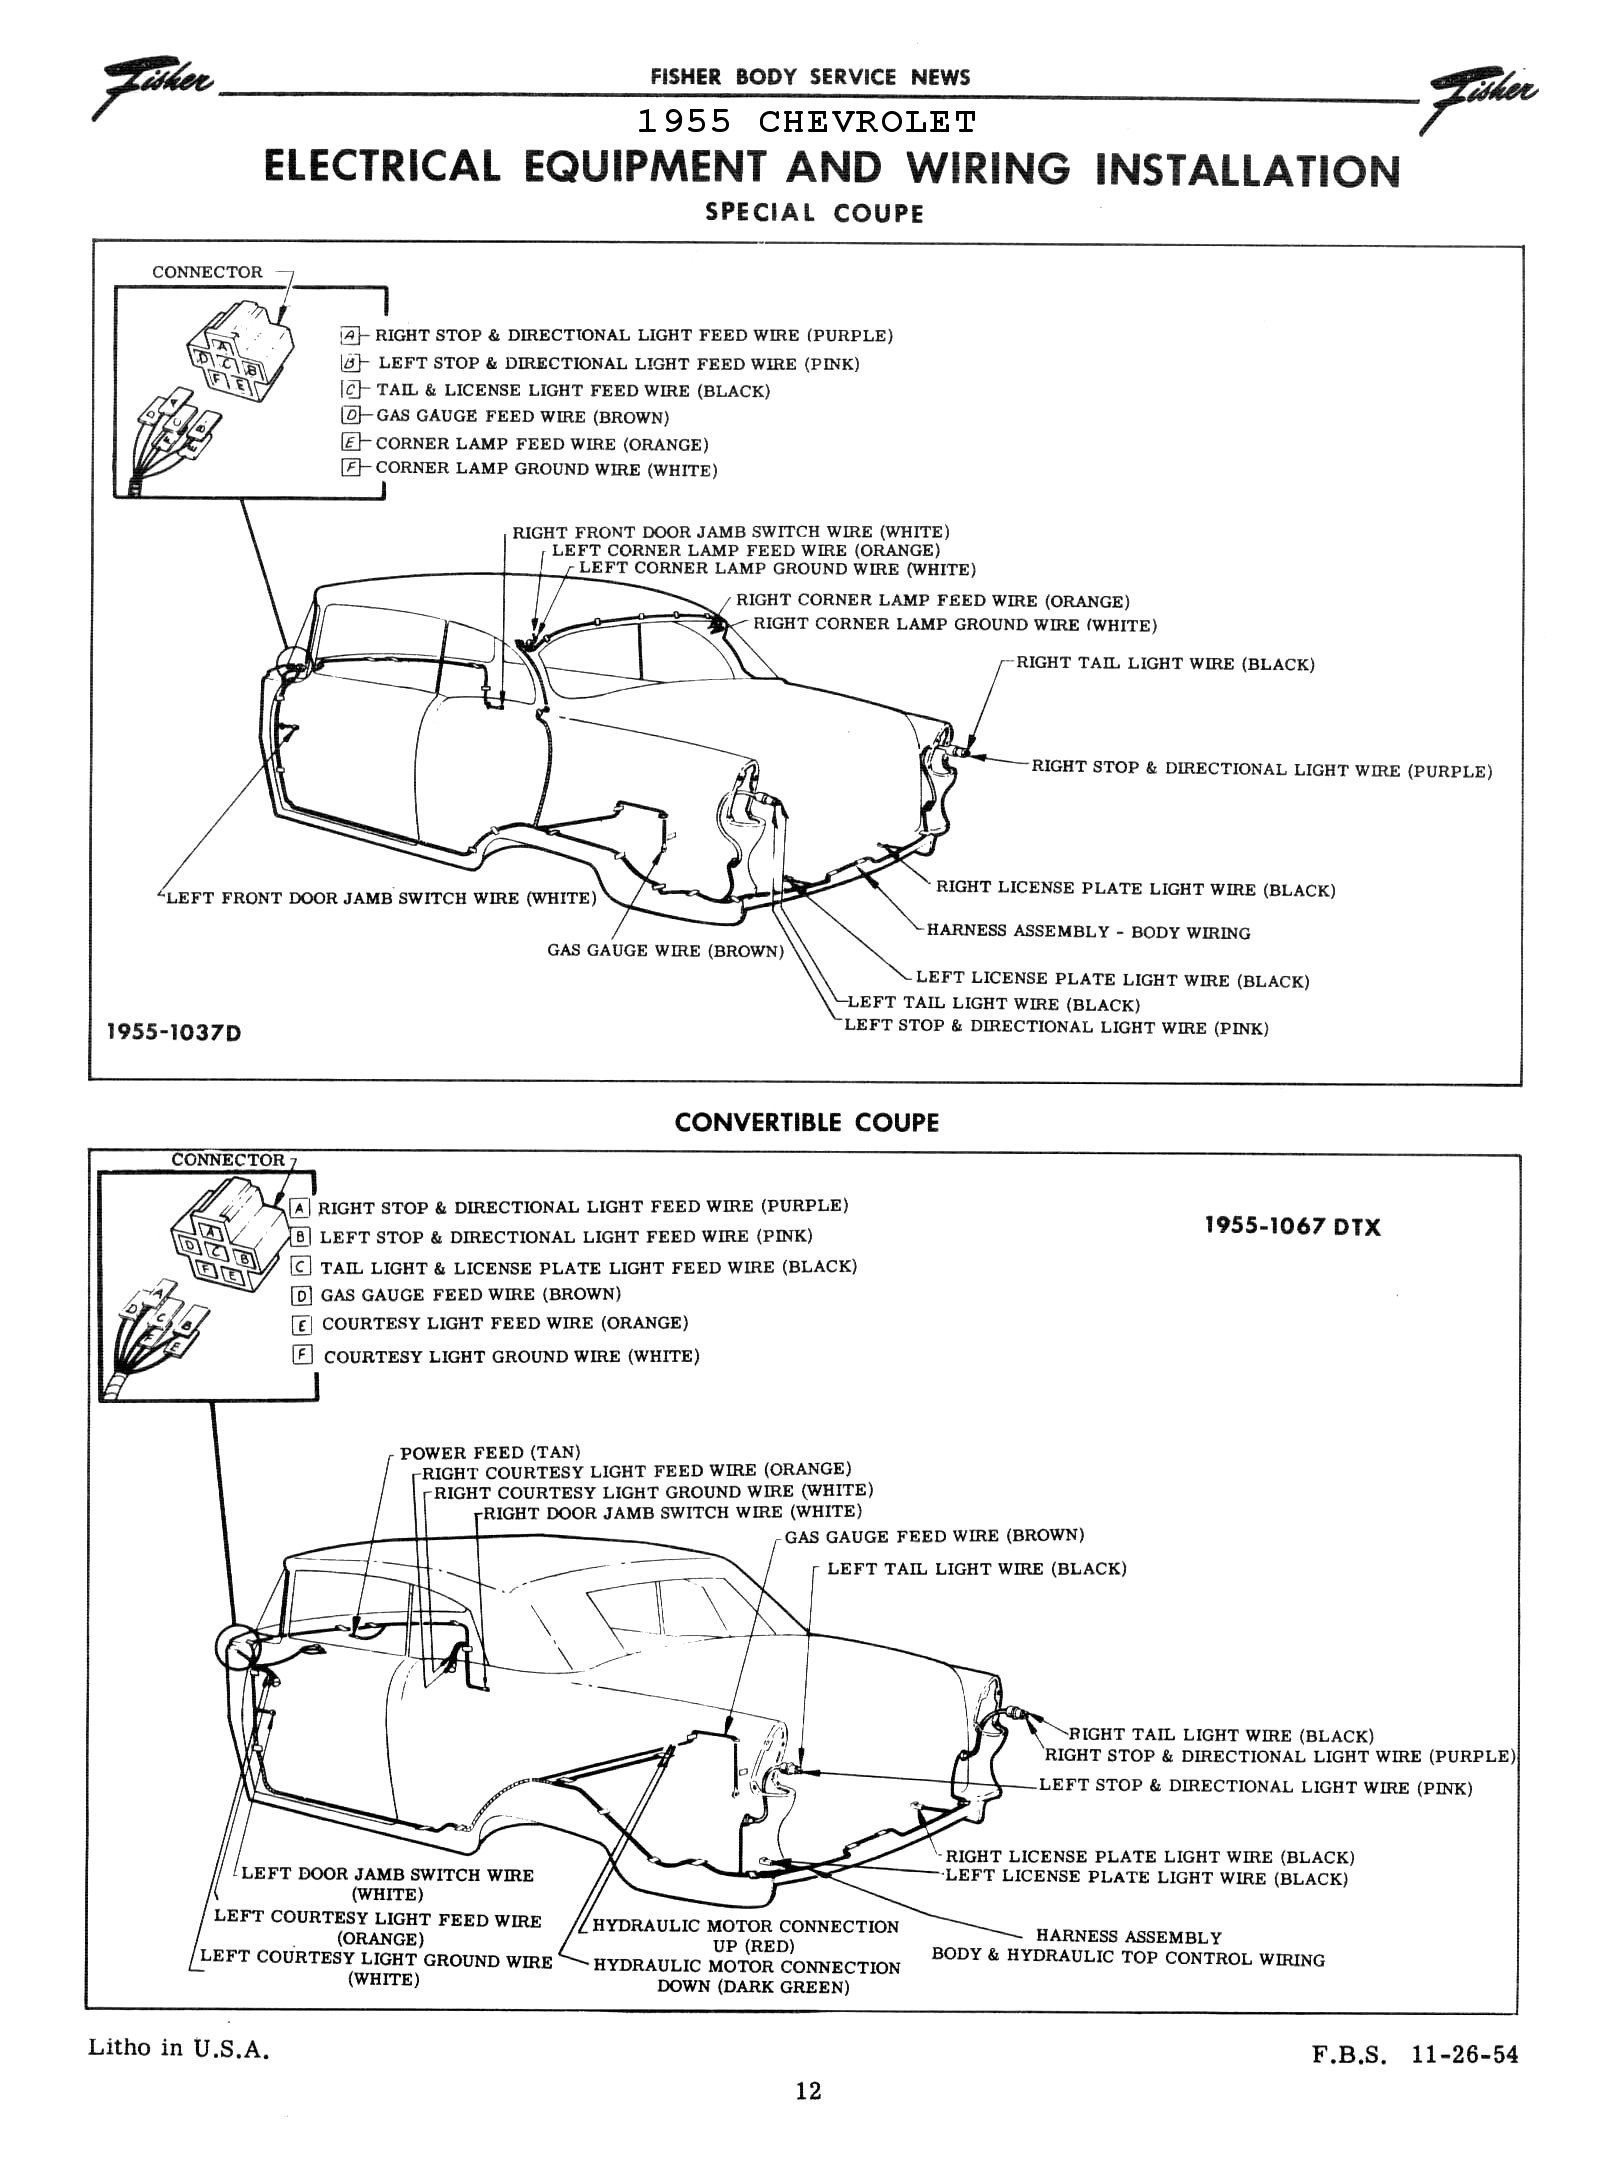 1958 Chevy Truck Wiring Diagram Signal Worksheet And Turn Signals Limeworks Ts1342 1954 Bel Air Diagrams Reinvent Your U2022 Rh Kismetcars Co Uk 93